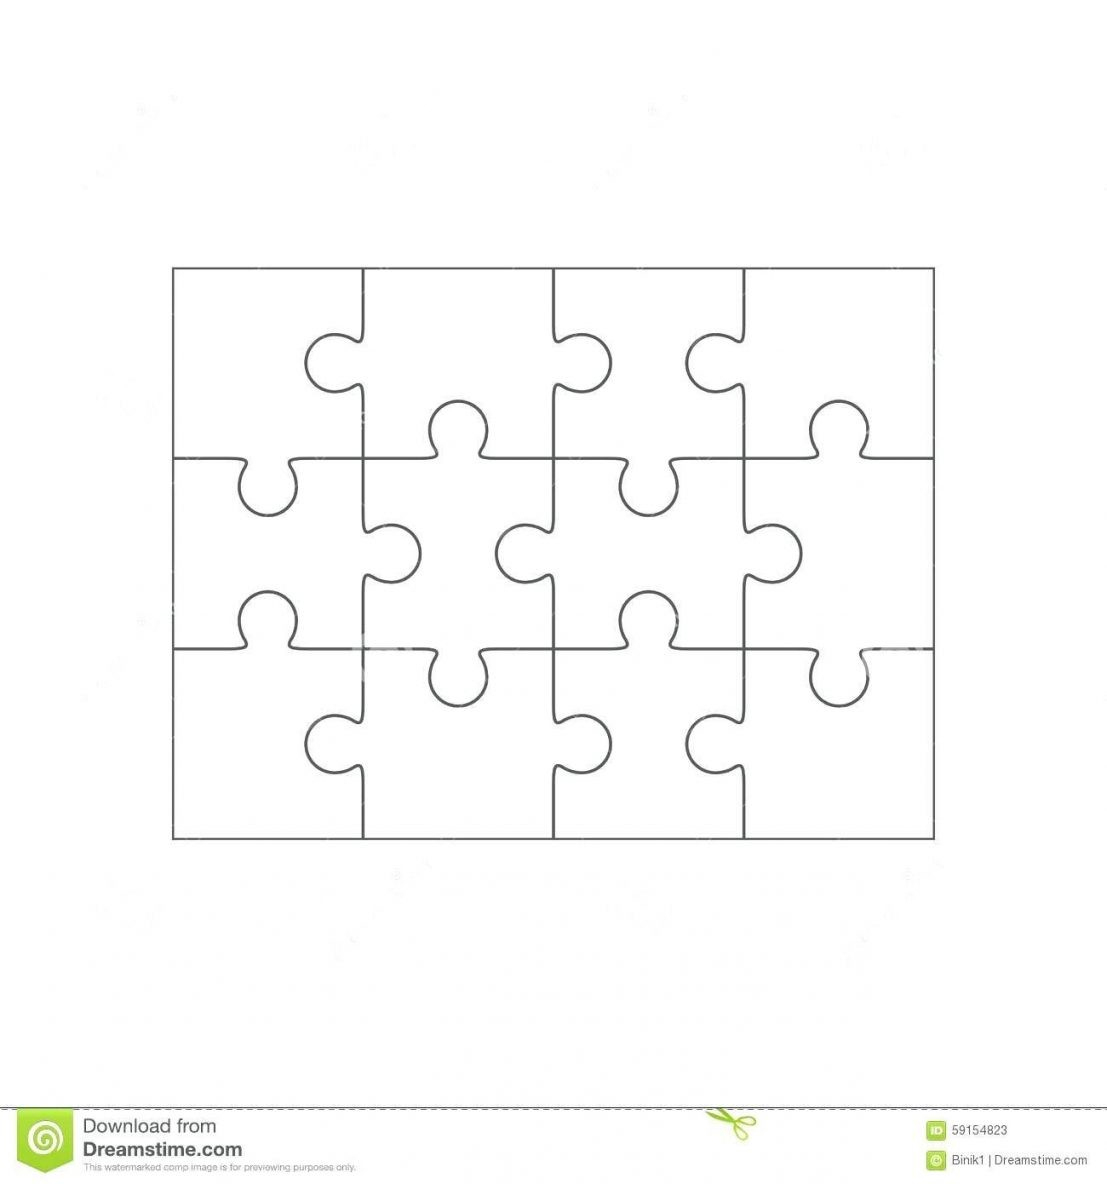 Crossword Puzzle Maker And Word Search Crosswords Printable Jigsaw - Jigsaw Puzzle Maker Free Printable